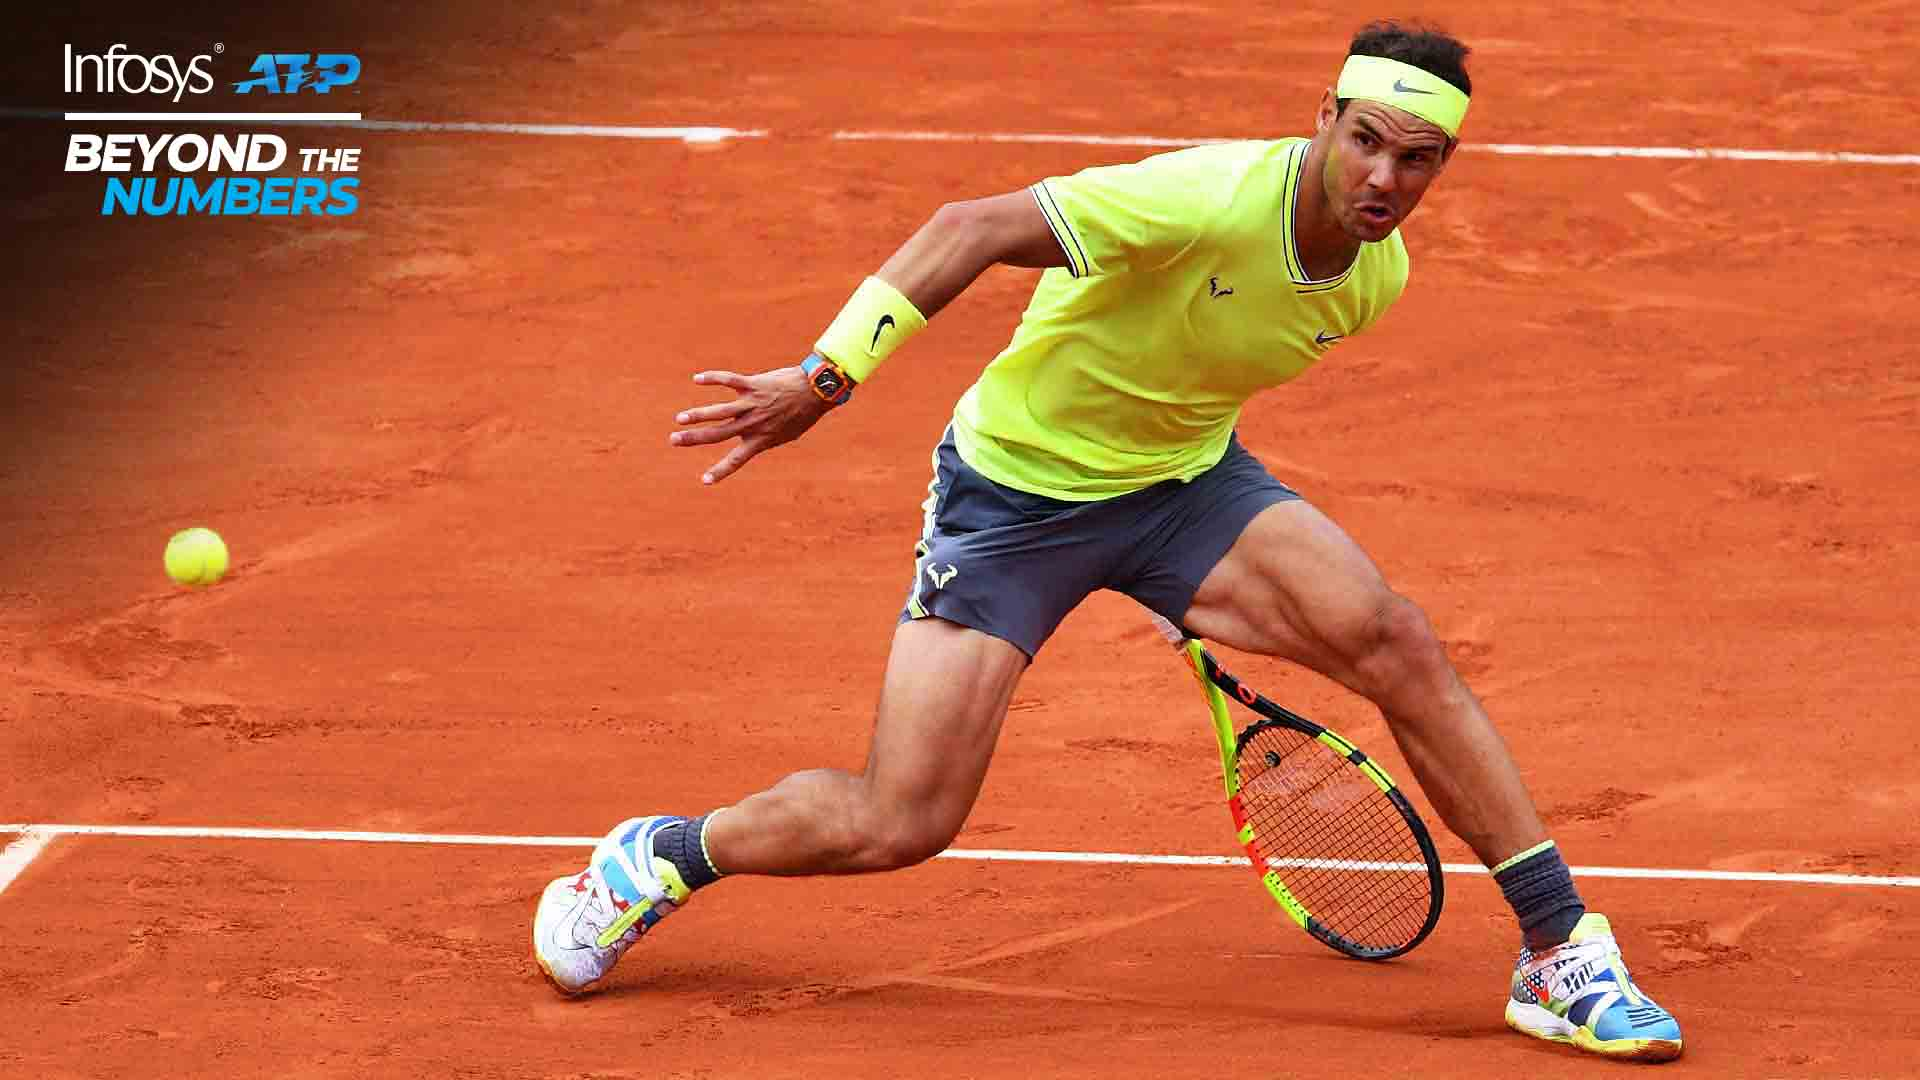 Rafael Nadal has won more than 68 per cent of the games he has contested during third sets at Roland Garros.